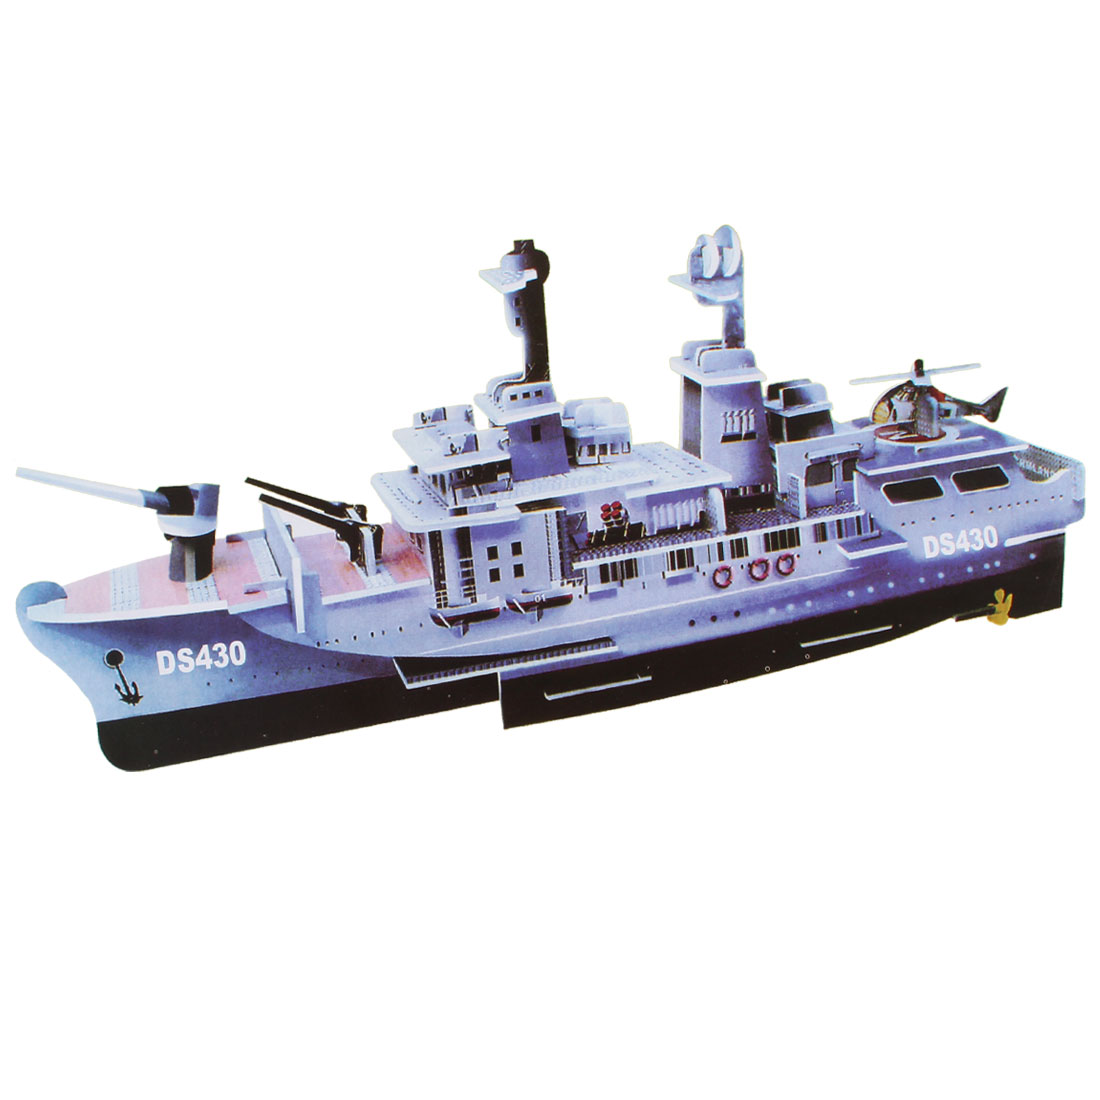 3D Model Ship Foam Paper Puzzle DIY Intelligence Toy for Children